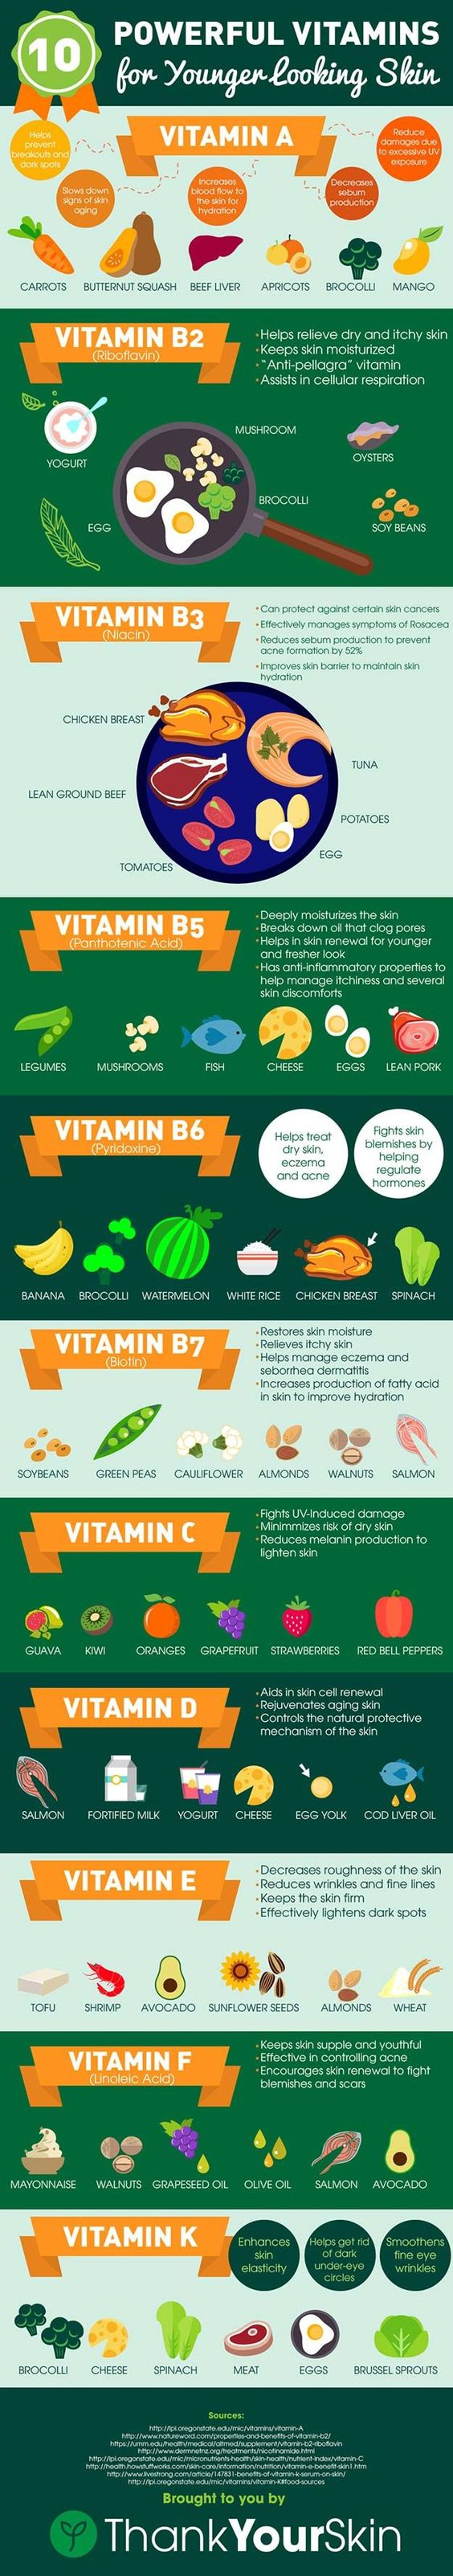 Vitamins For Younger Looking Skin Infographic